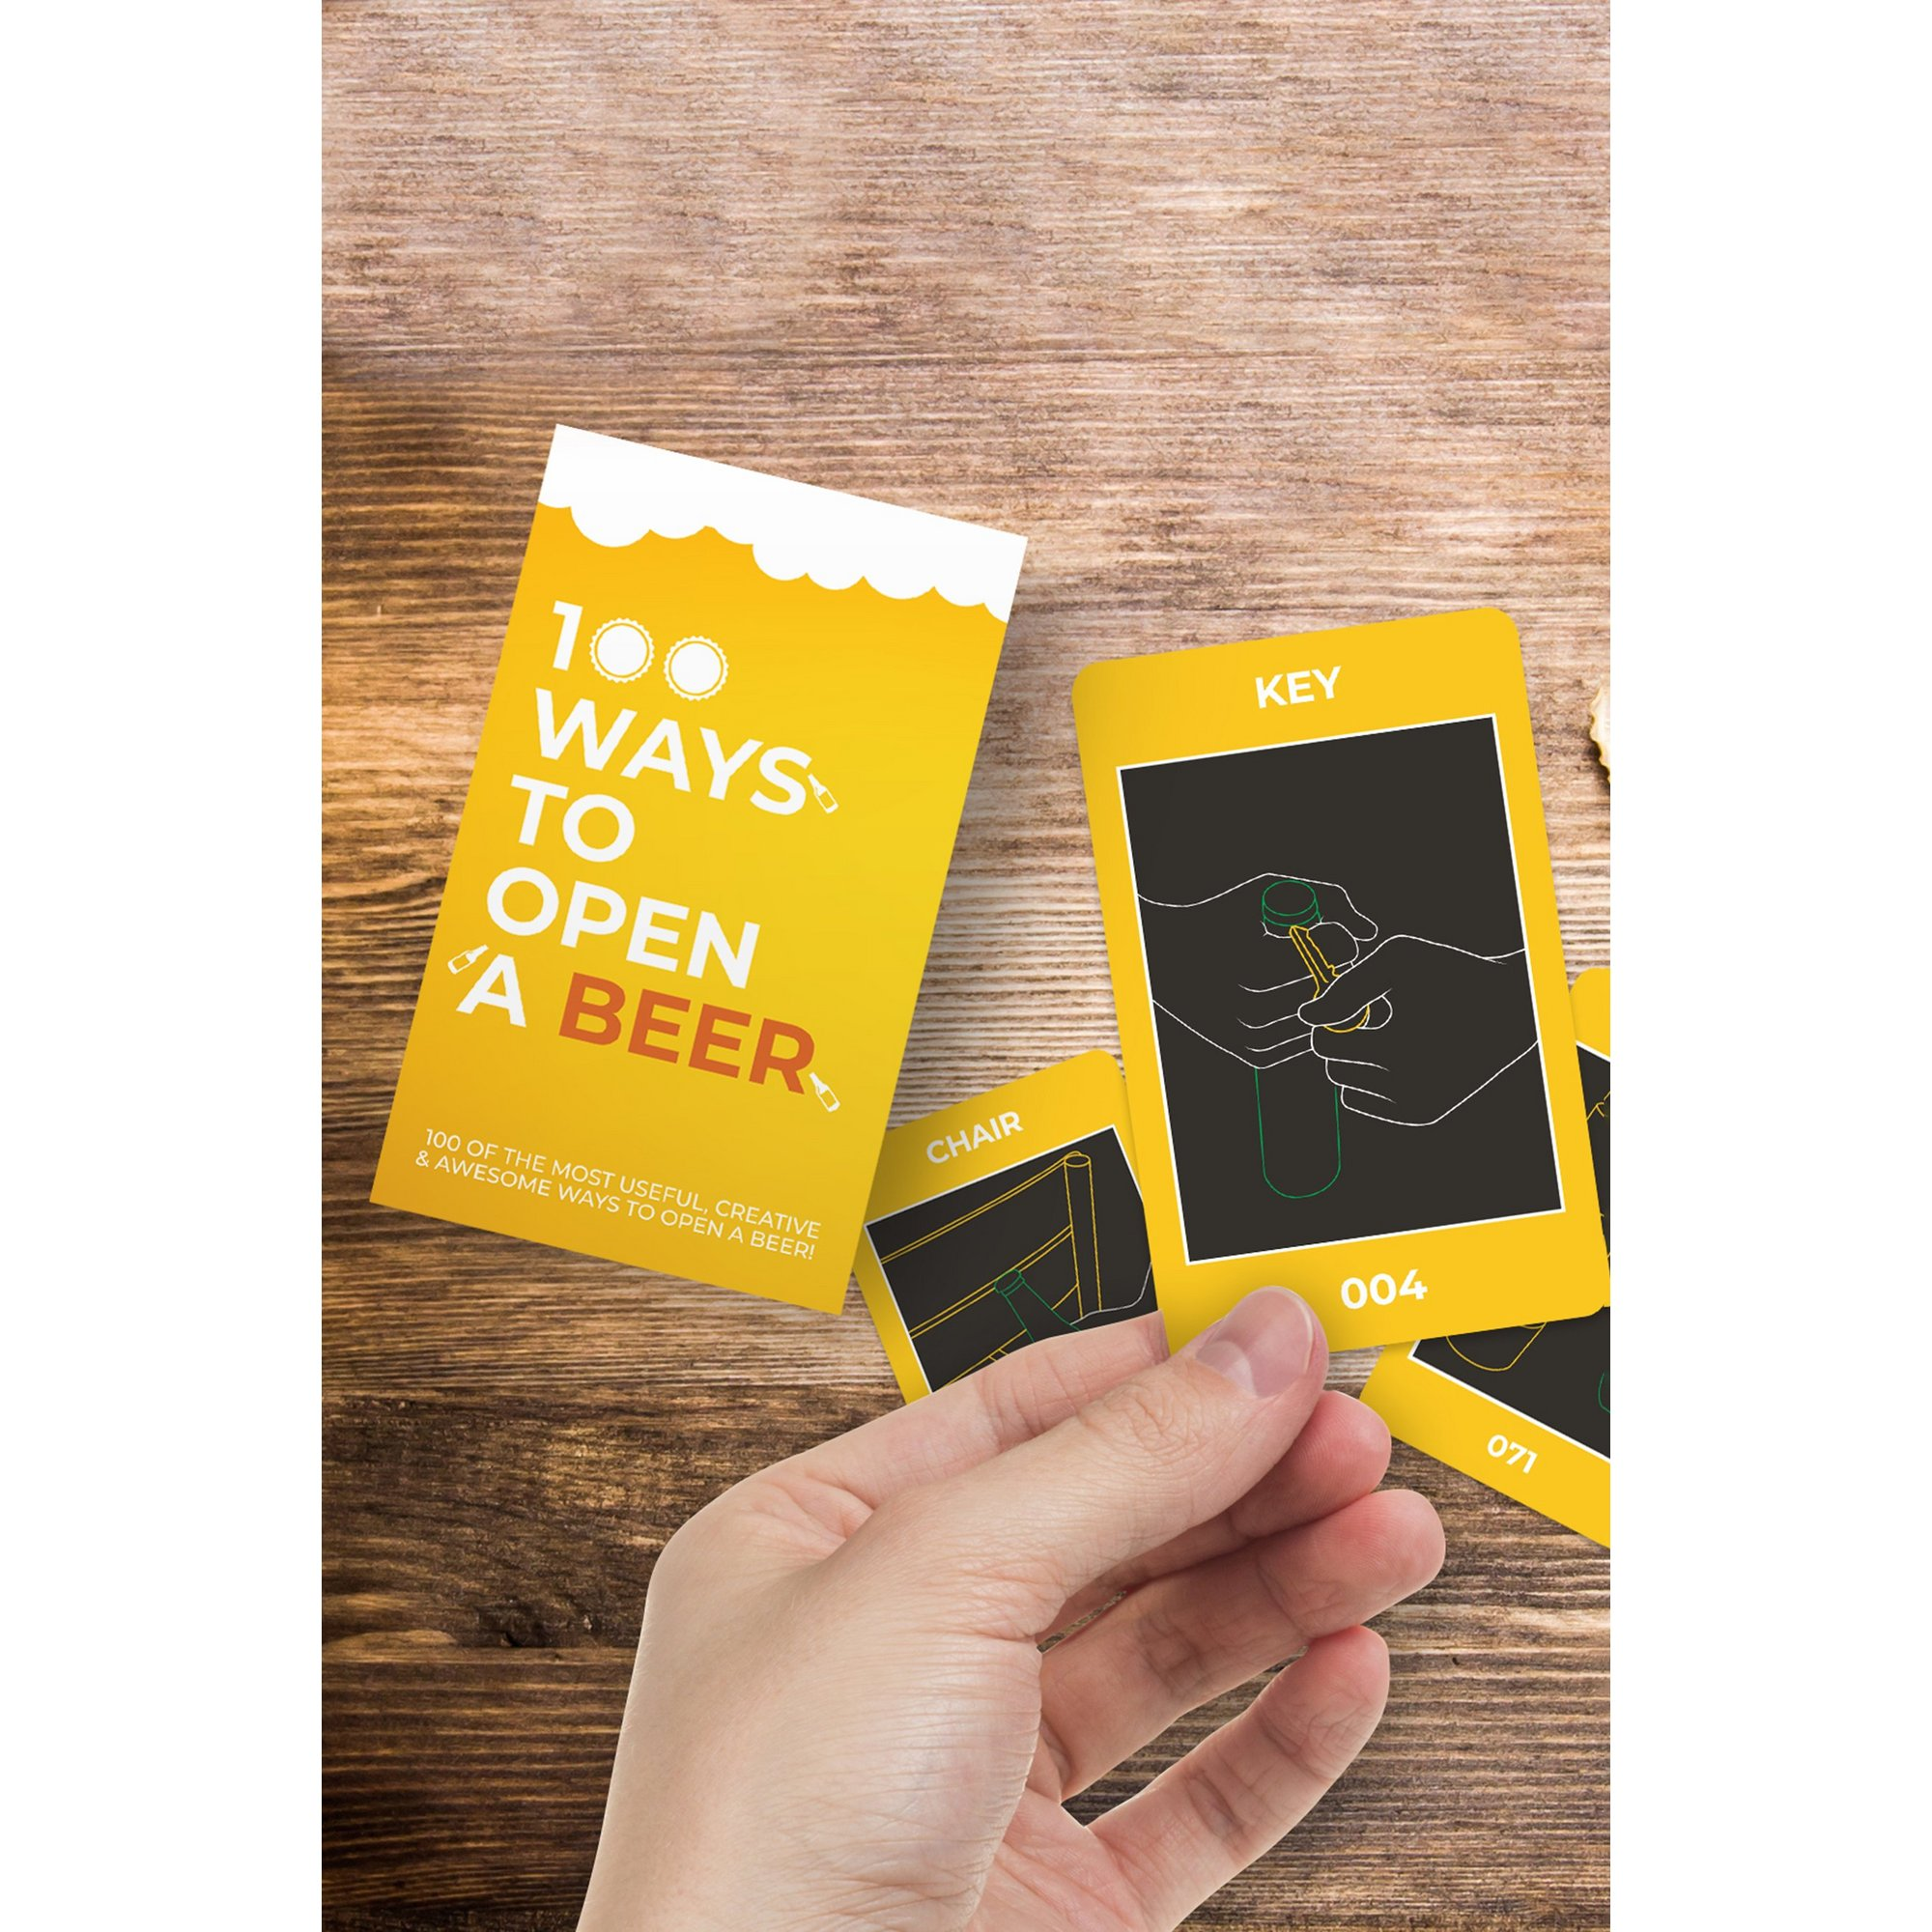 Image of 100 Ways To Open a Beer Cards